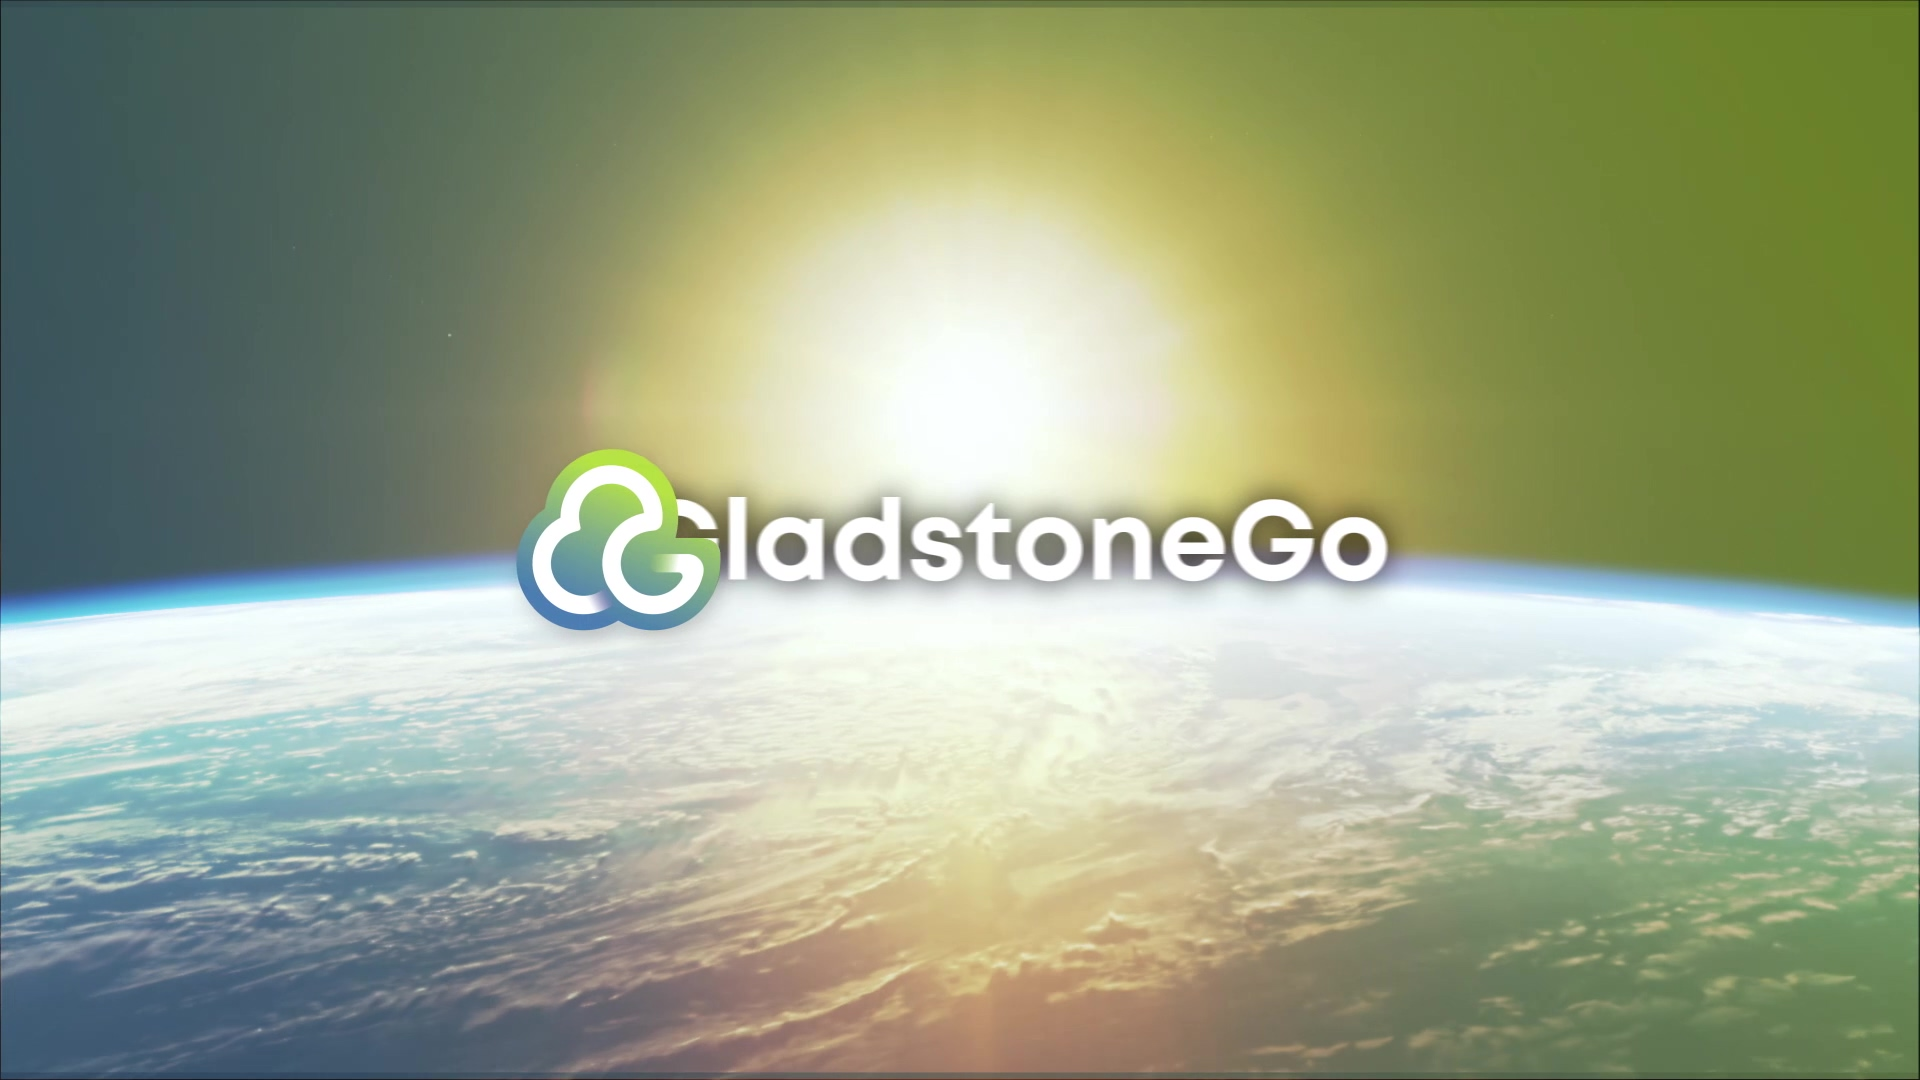 GladstoneGo Sizzle video - Launch Version